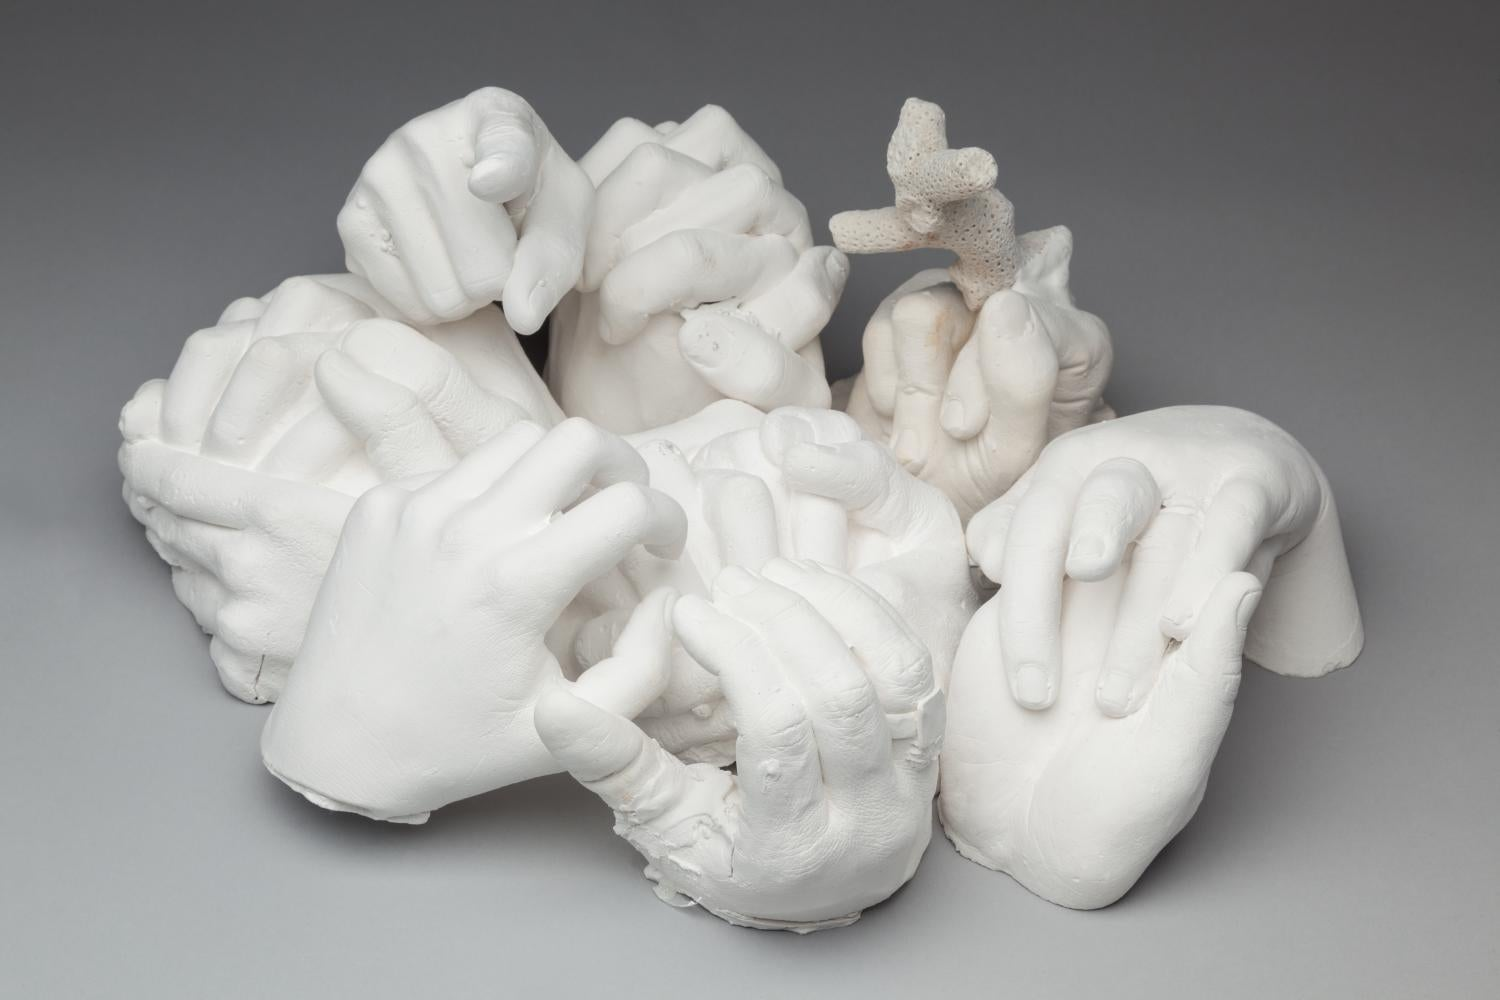 Plaster of paris castings of human hands, coral, and cauliflowers placed in front of a grey background.